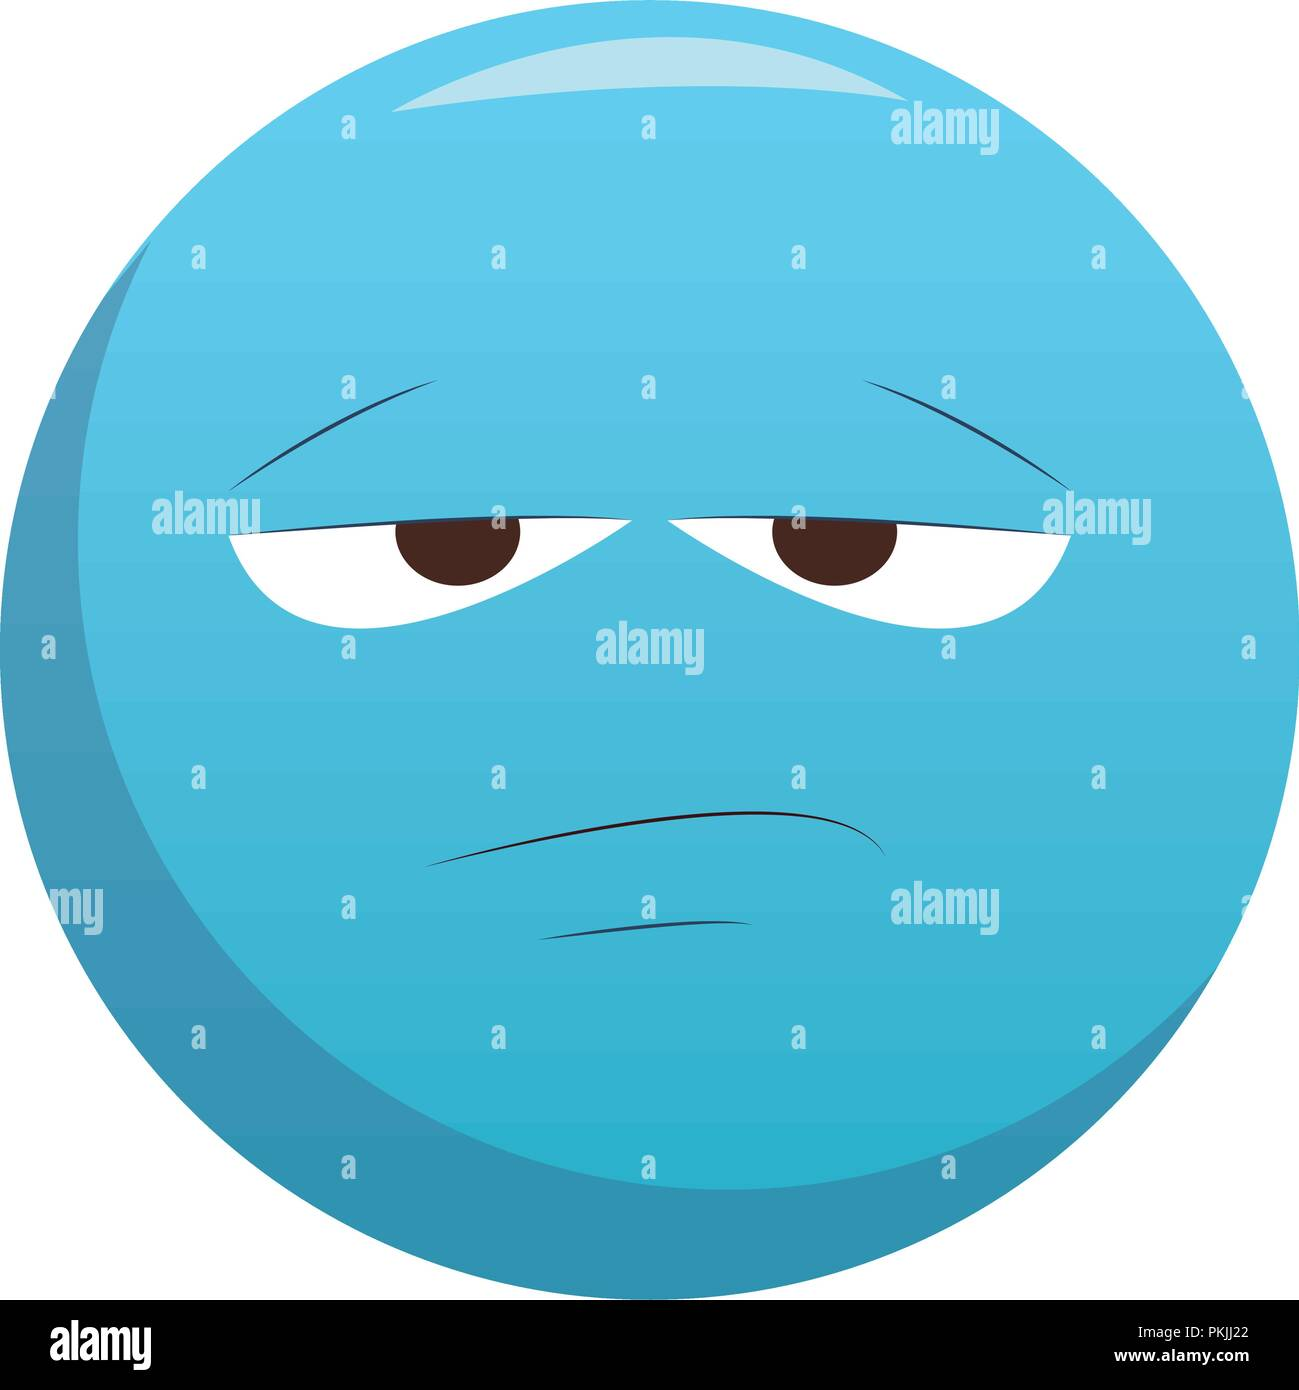 Emoticone Chat S Ennuie Image Vectorielle Stock Alamy